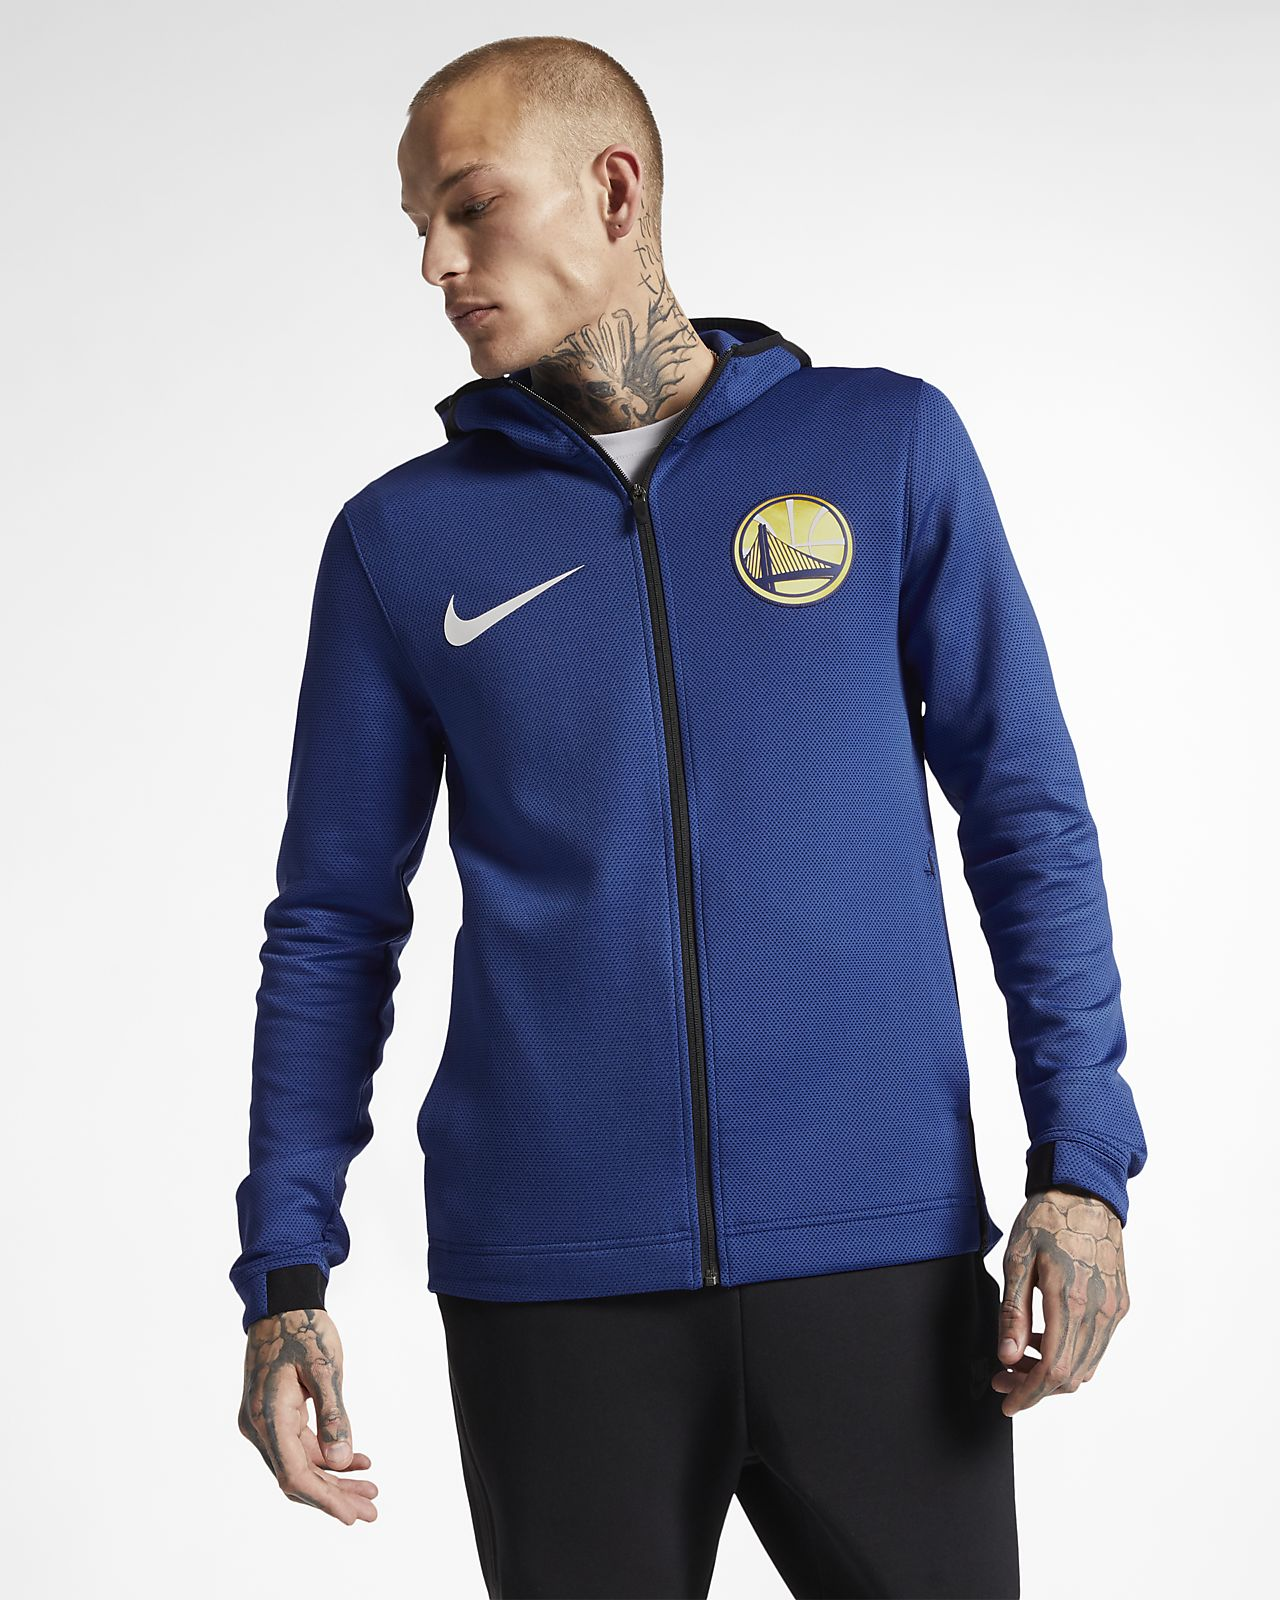 9da02d3c37a ... Golden State Warriors Nike Therma Flex Showtime NBA-hoodie voor heren